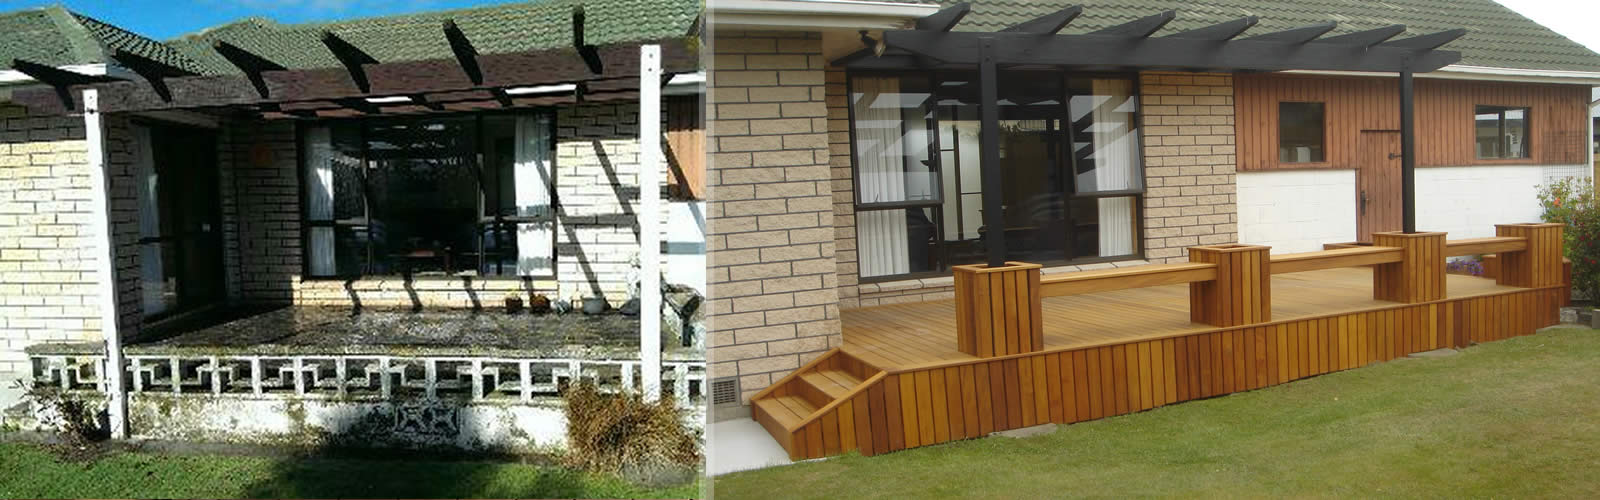 Before + After Garapa decking with Planters